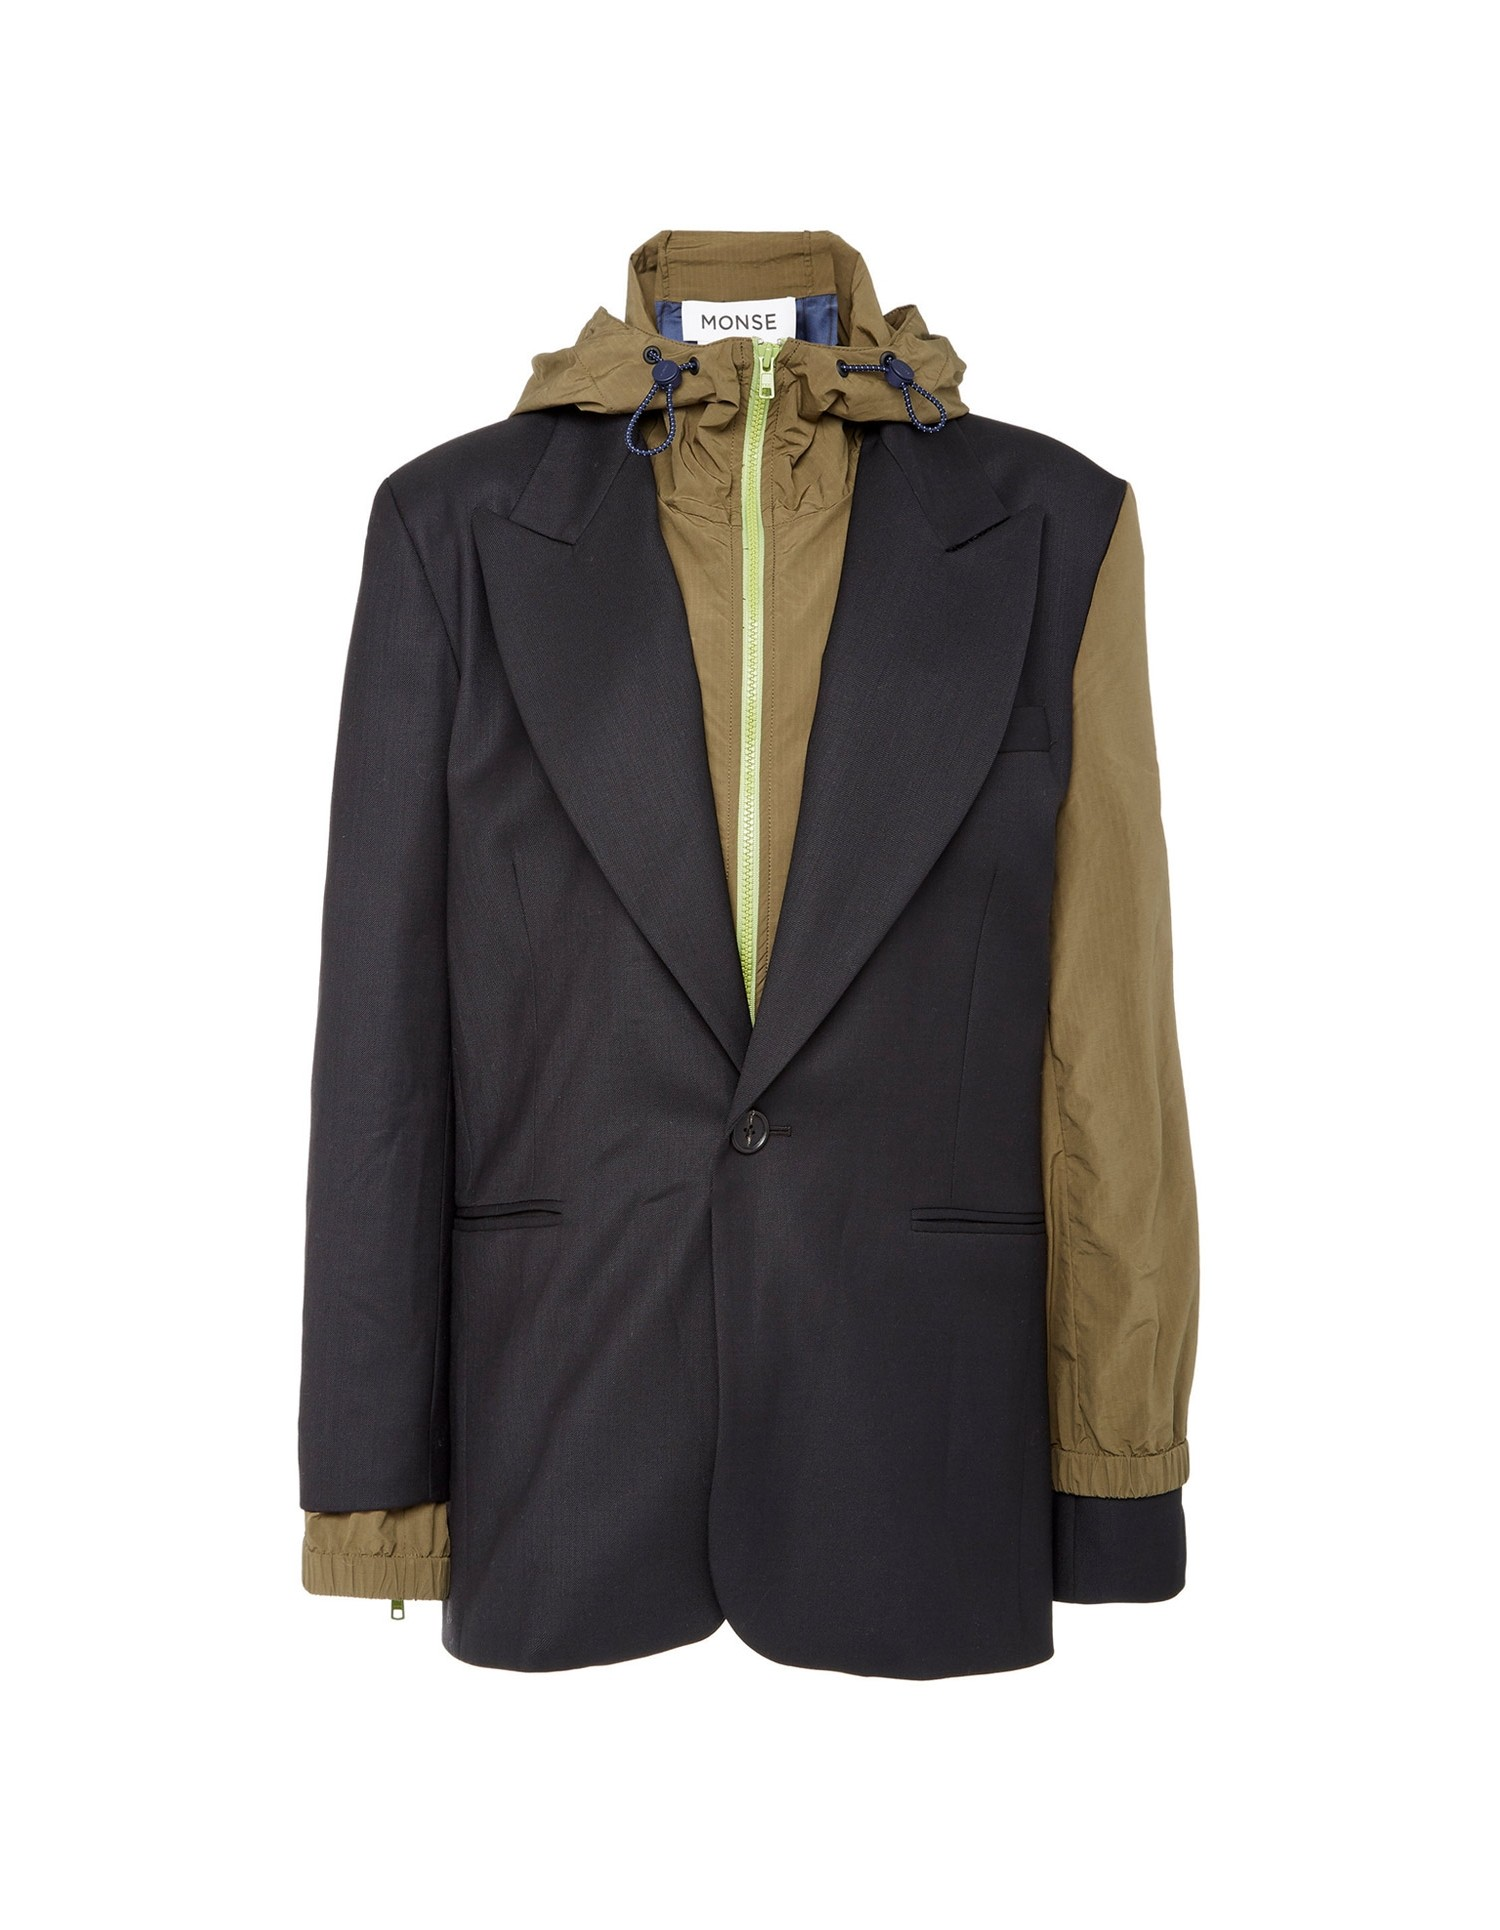 MONSE Wool & Nylon Double Blazer on Model Front View